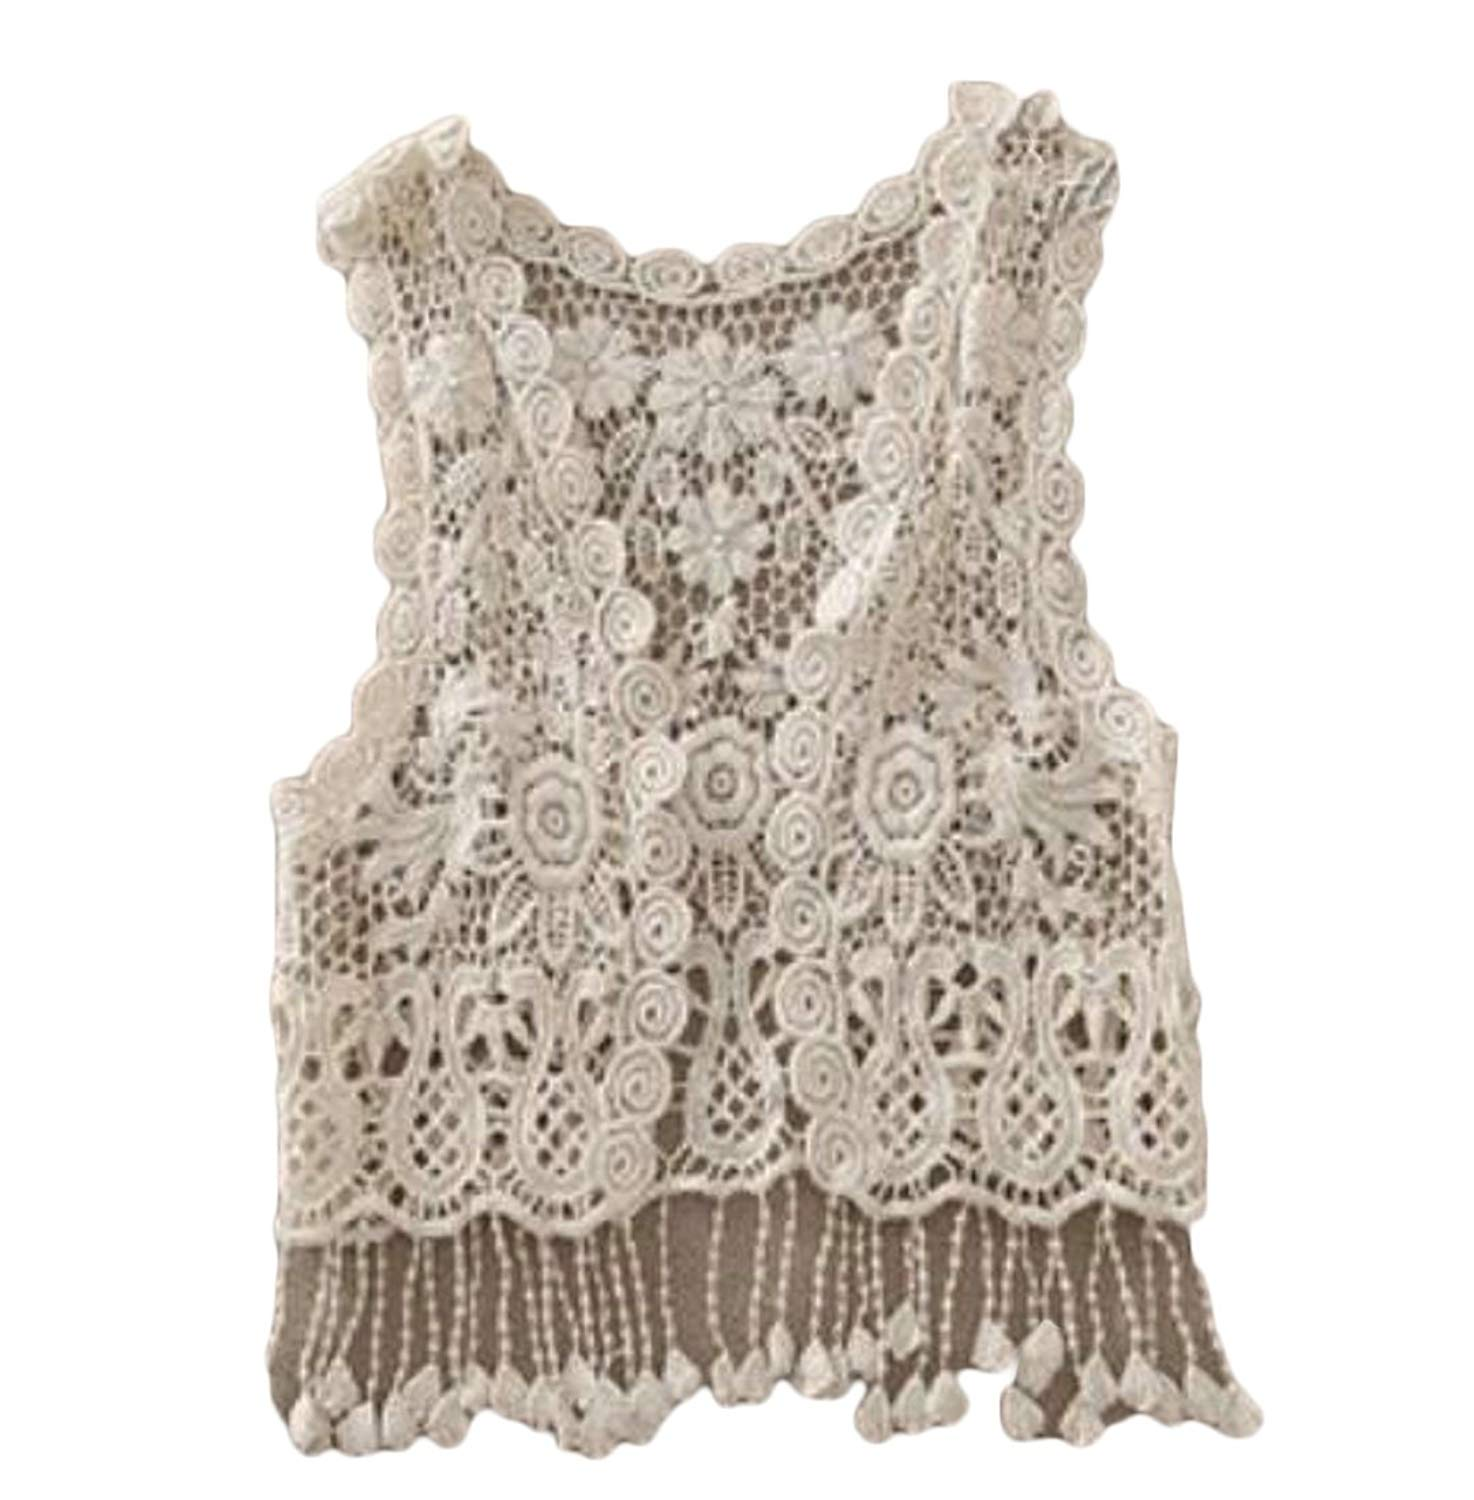 cb19018d46a63c Get Quotations · WSPLYSPJY Women s Sleeveless Shrug Open Front Crochet Cardigan  Vest